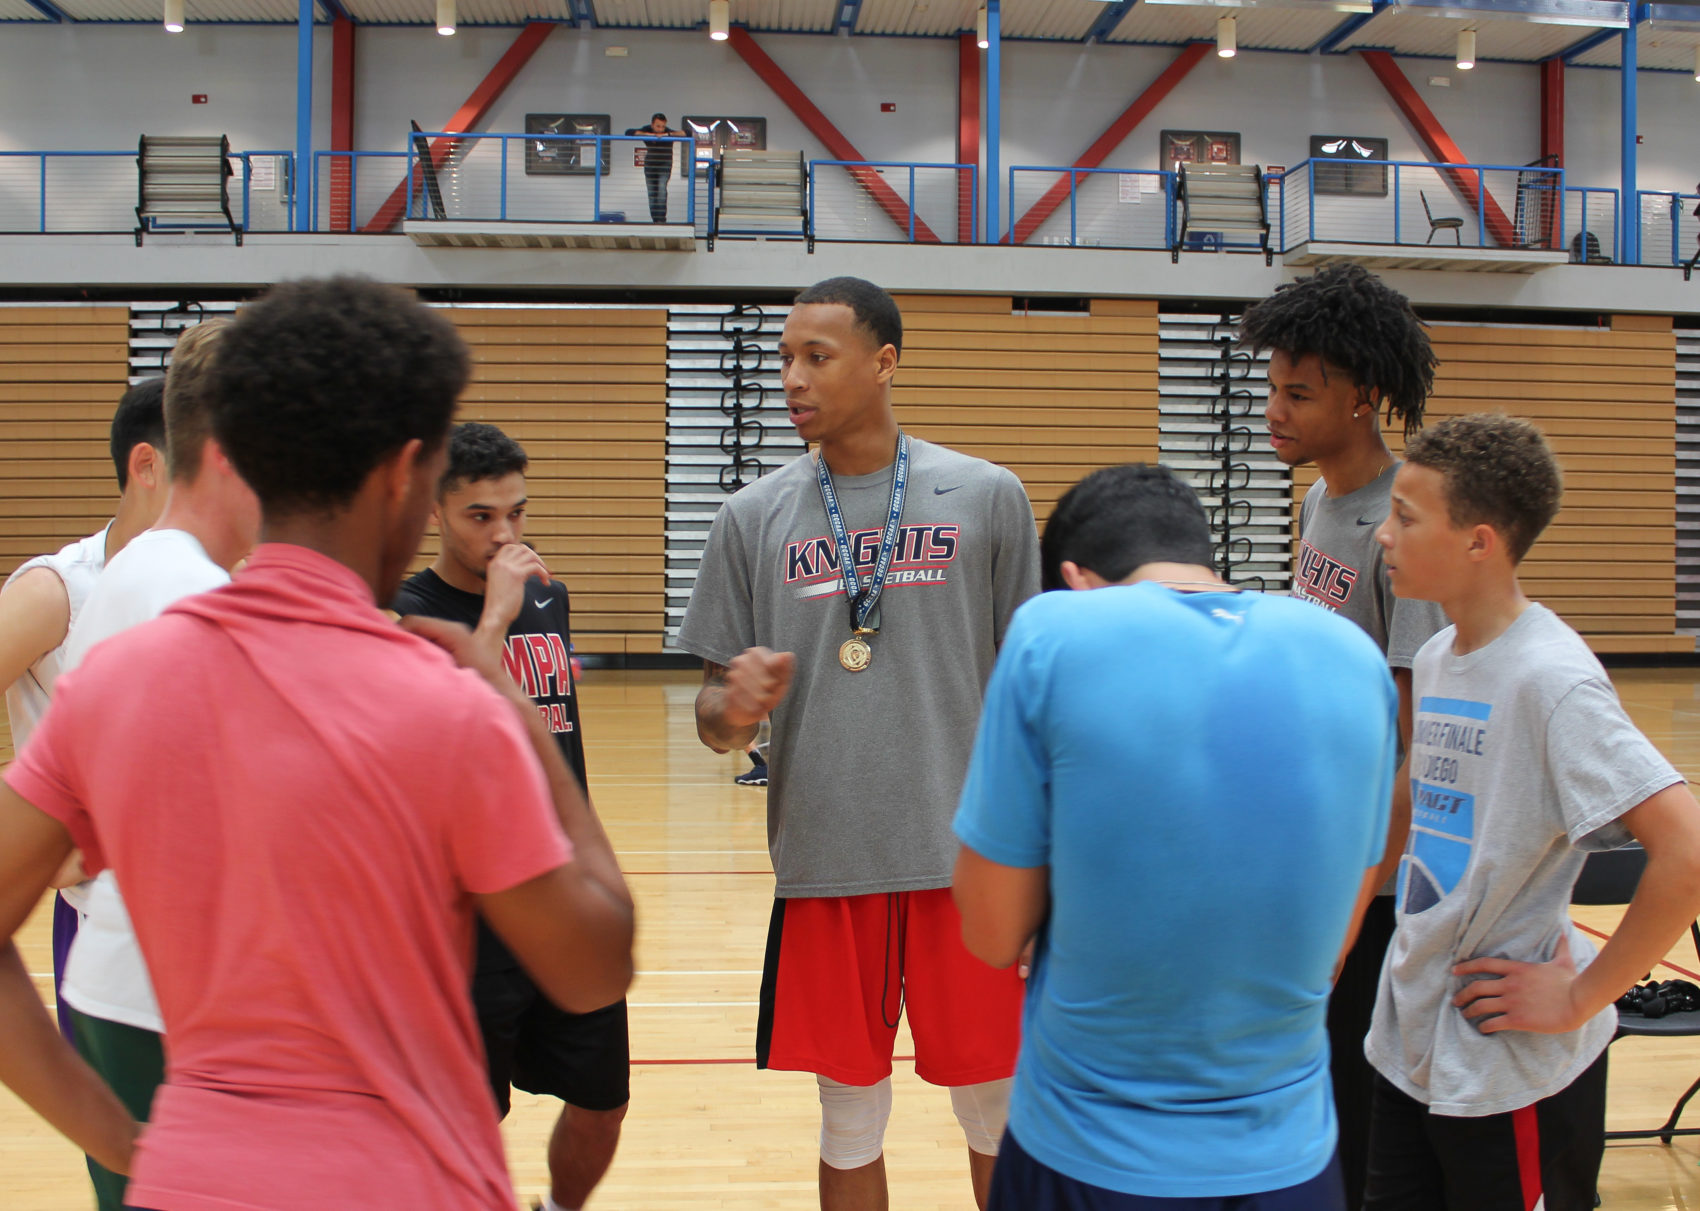 Nate Edwards (center) speaks to a group of basketball players. (Courtesy David Pradel)